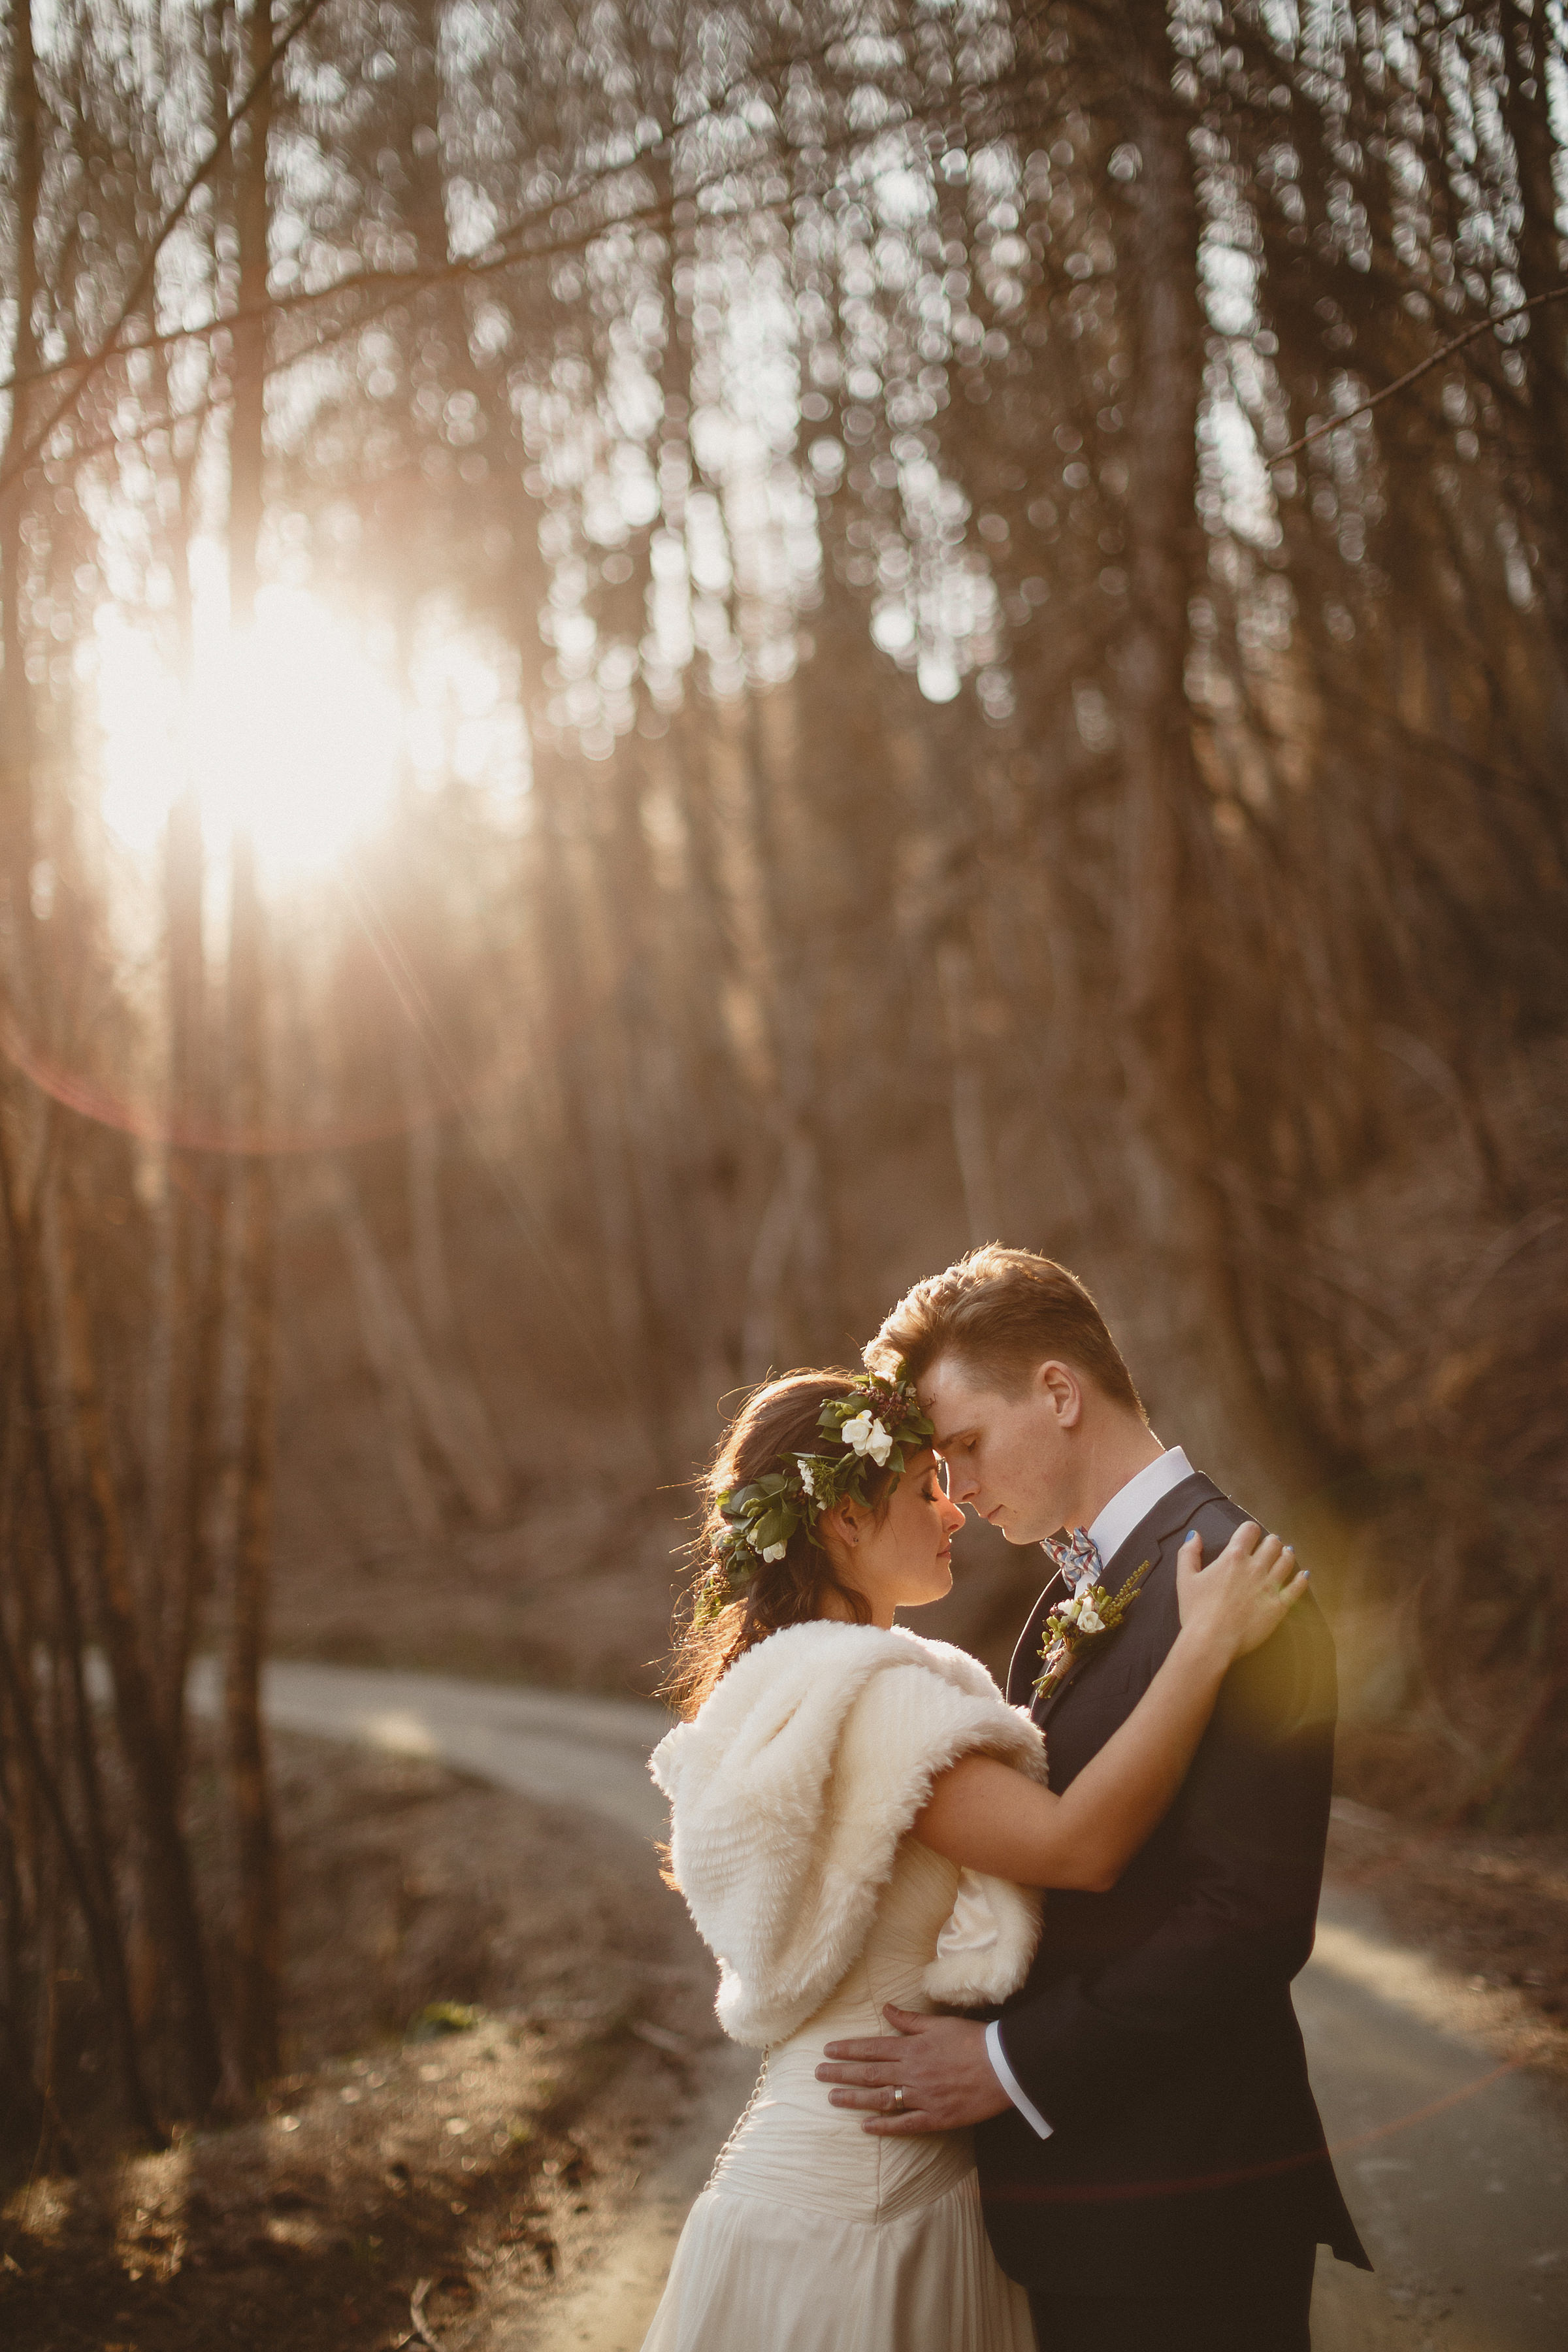 Lens flare couple portrait against trees - photo by Ed Peers Photography